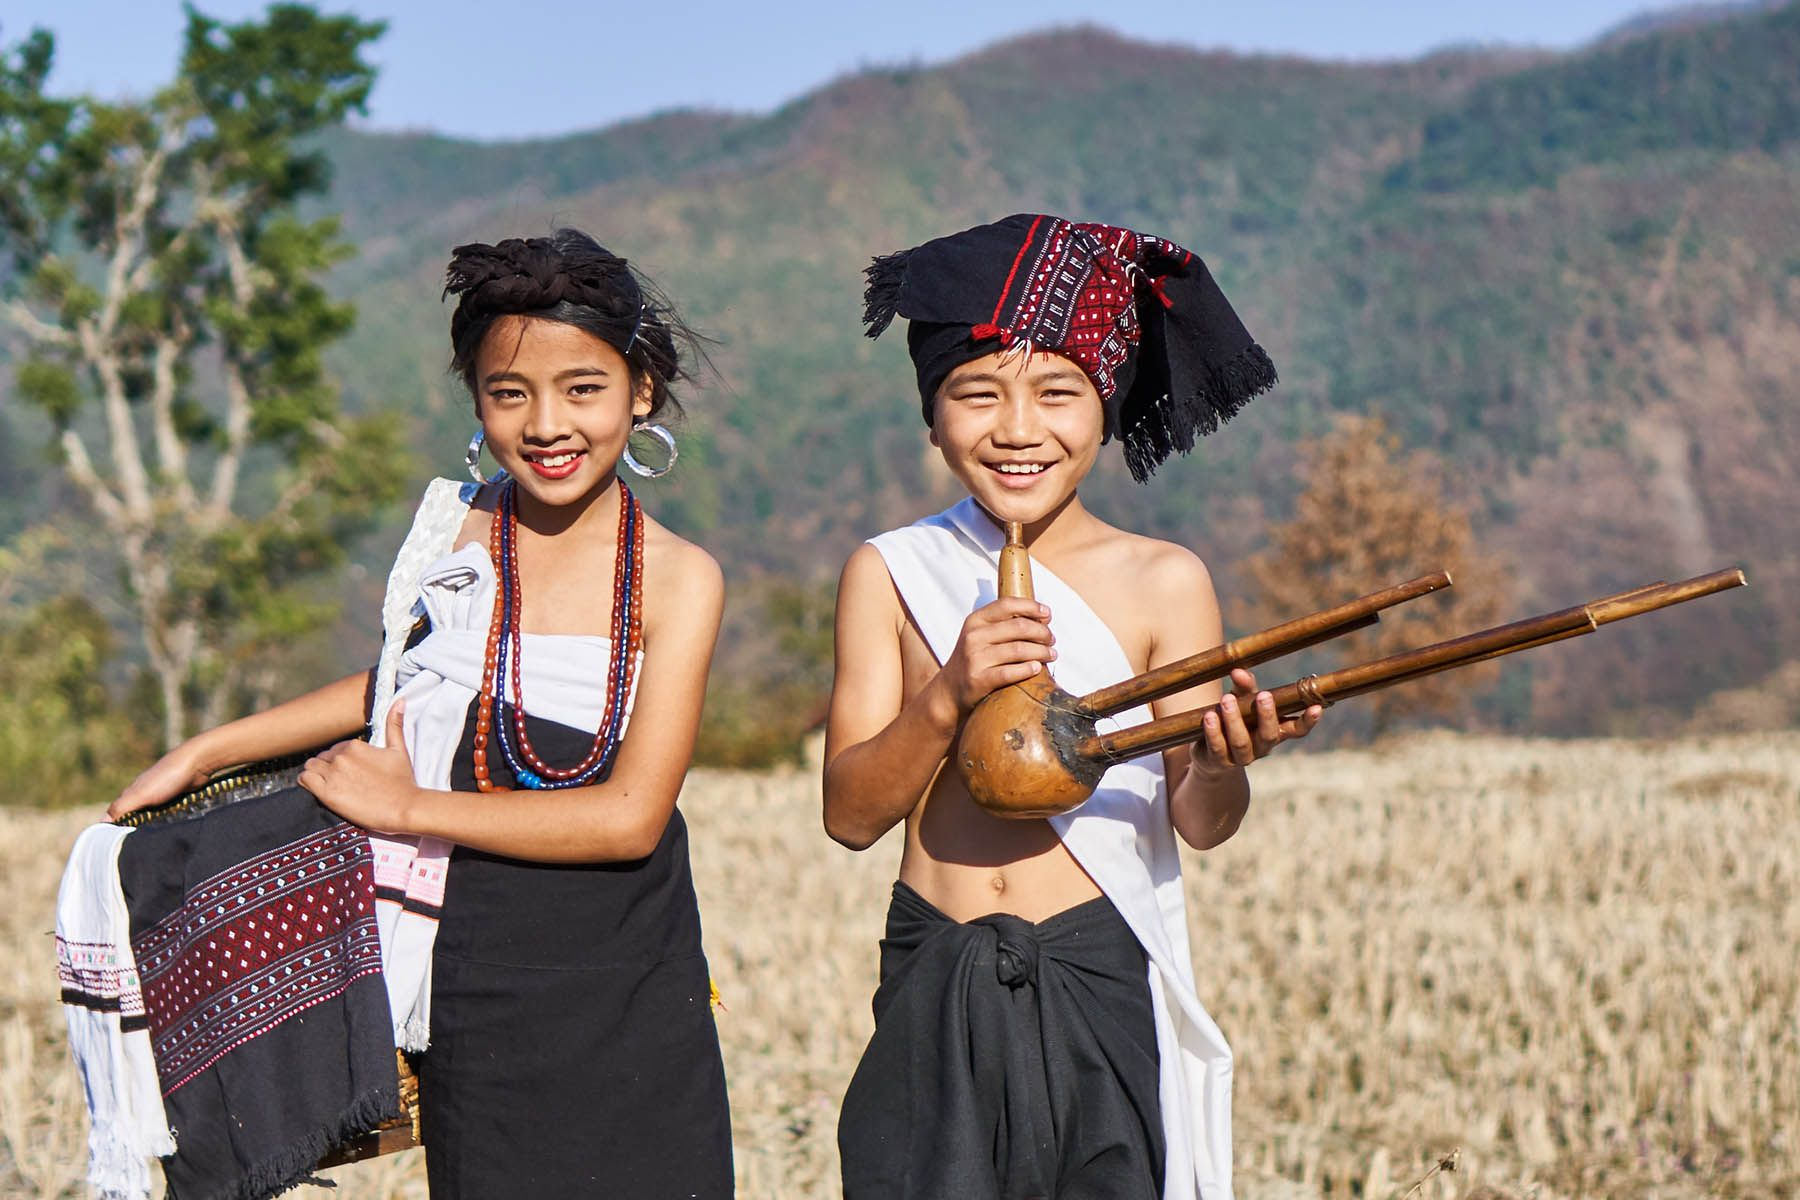 """Little """"Indians"""" from North East India - InDaBlog 